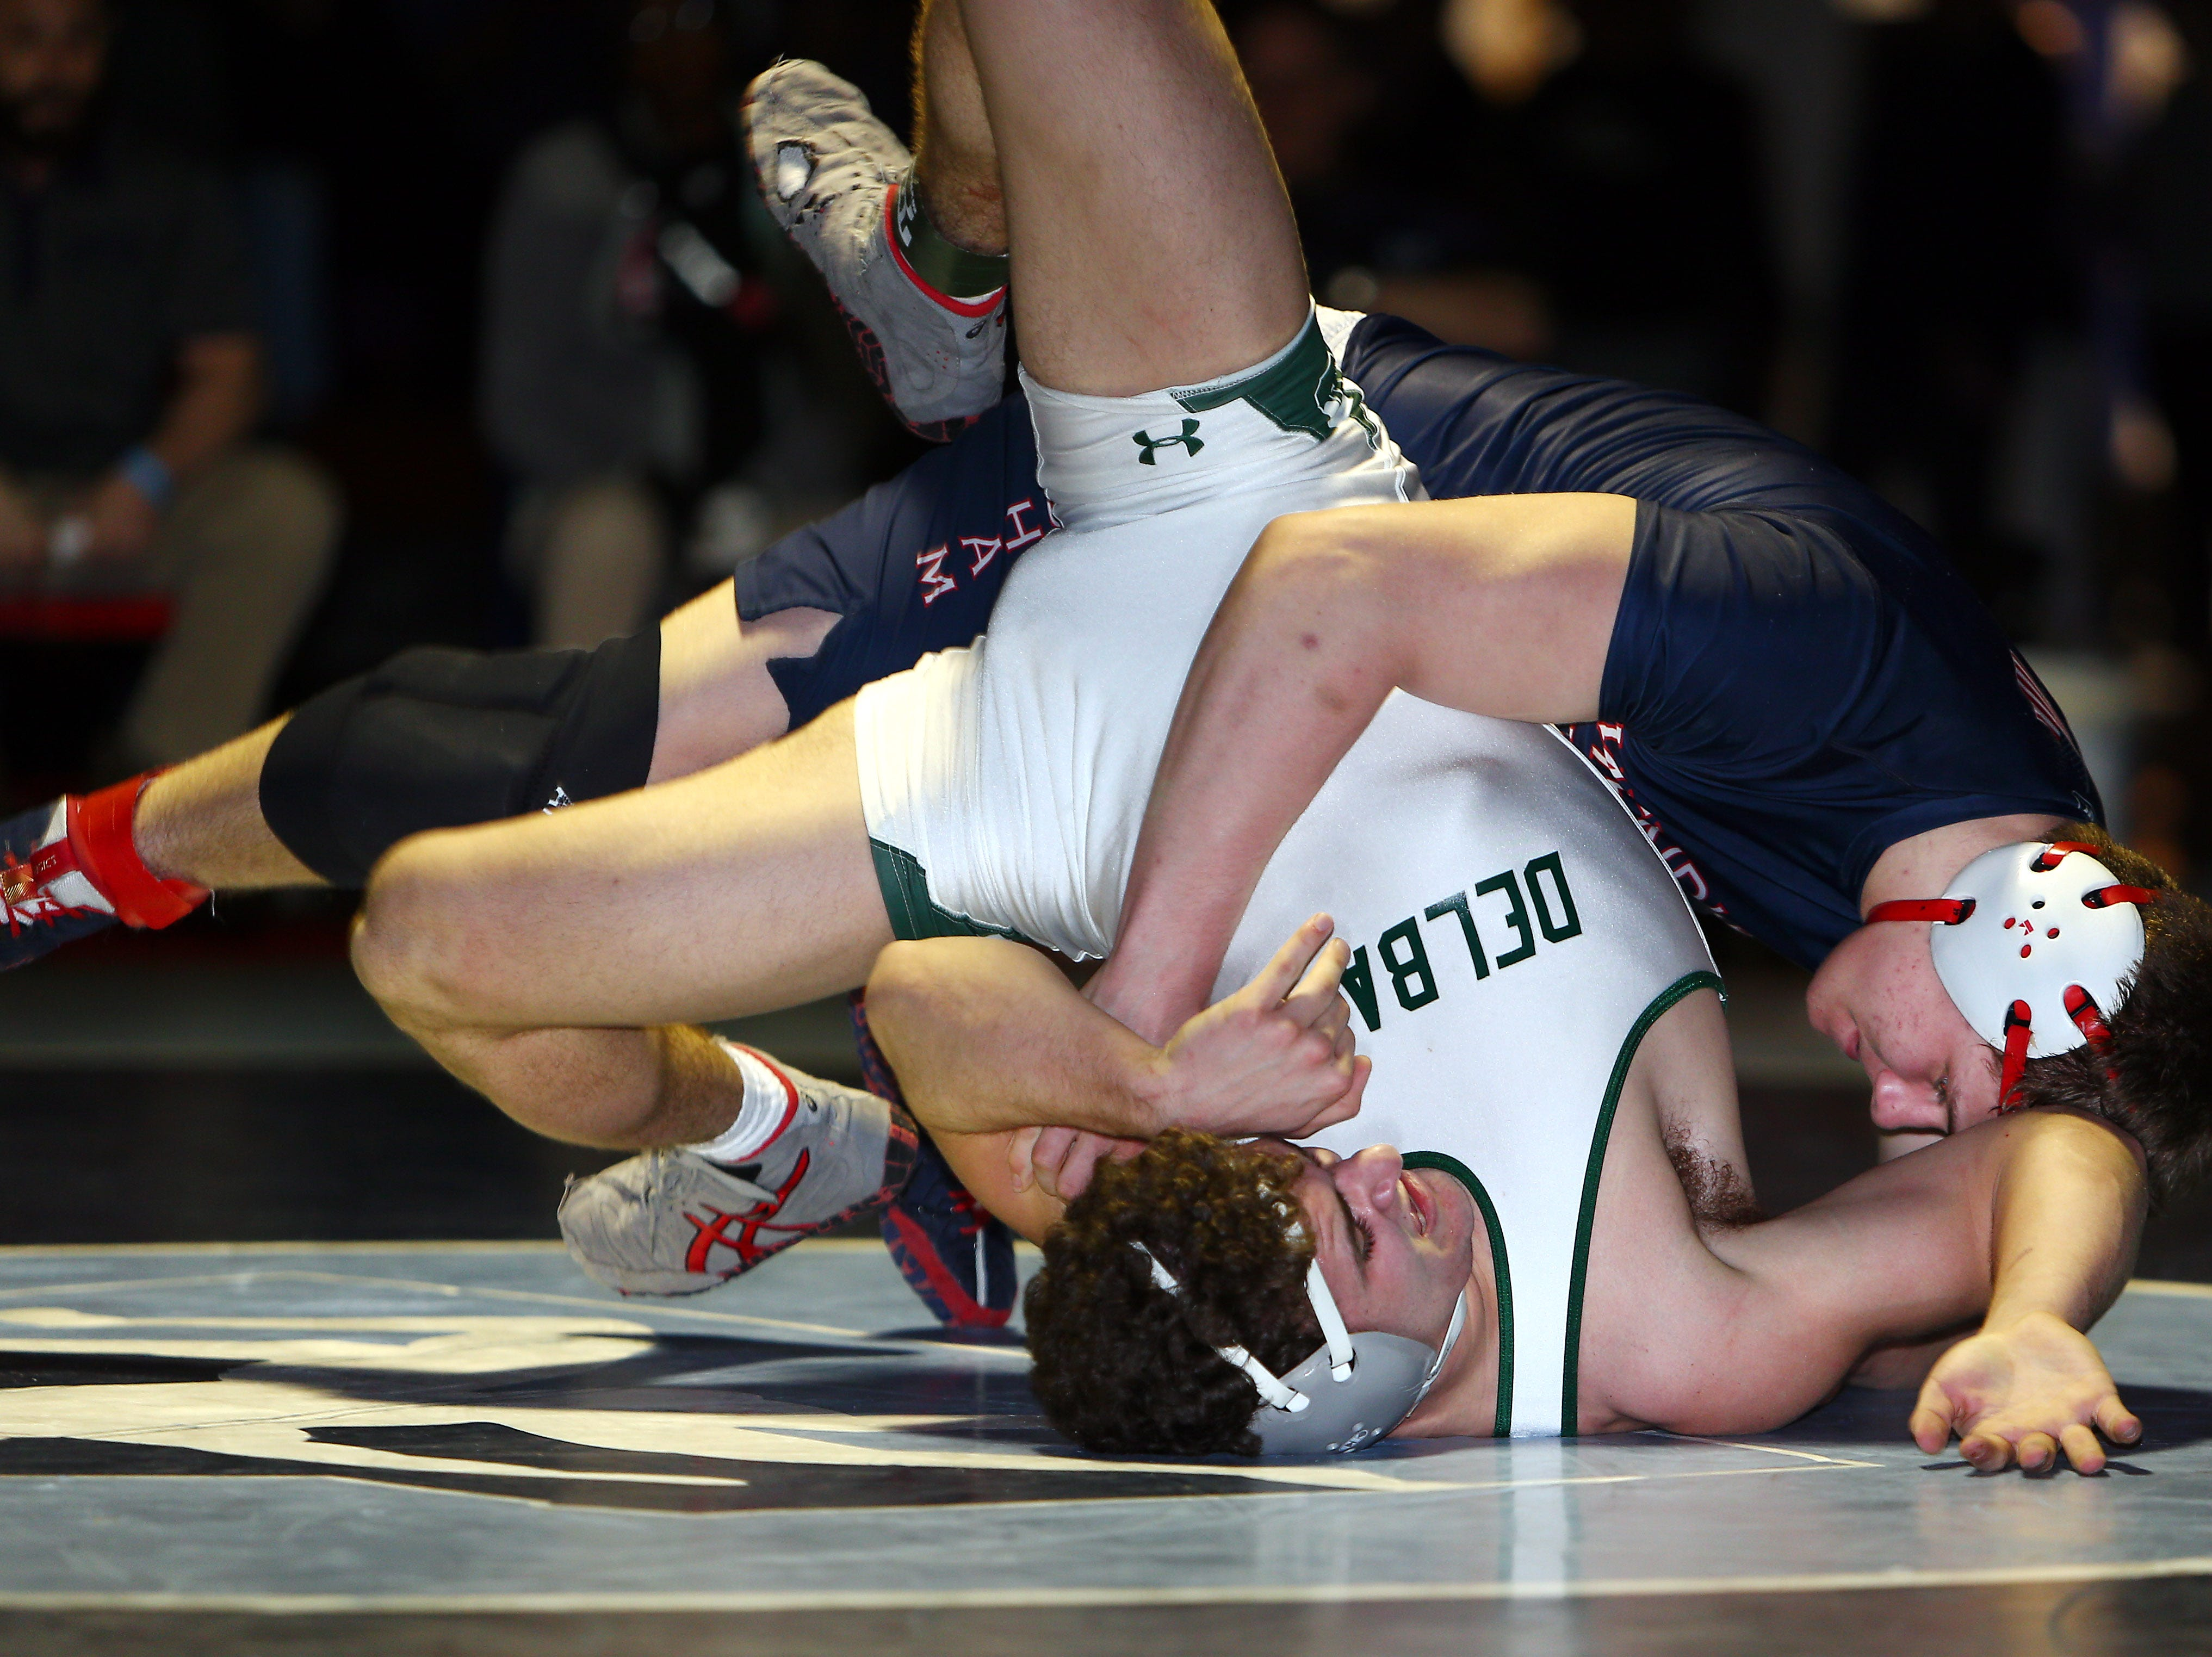 Gage Armijo of Mendham vs. Anthony Siragusa of Delbarton during the Region 3, 195 lb. wrestling final at West Orange High School. February 24, 2018. West Orange, NJ.